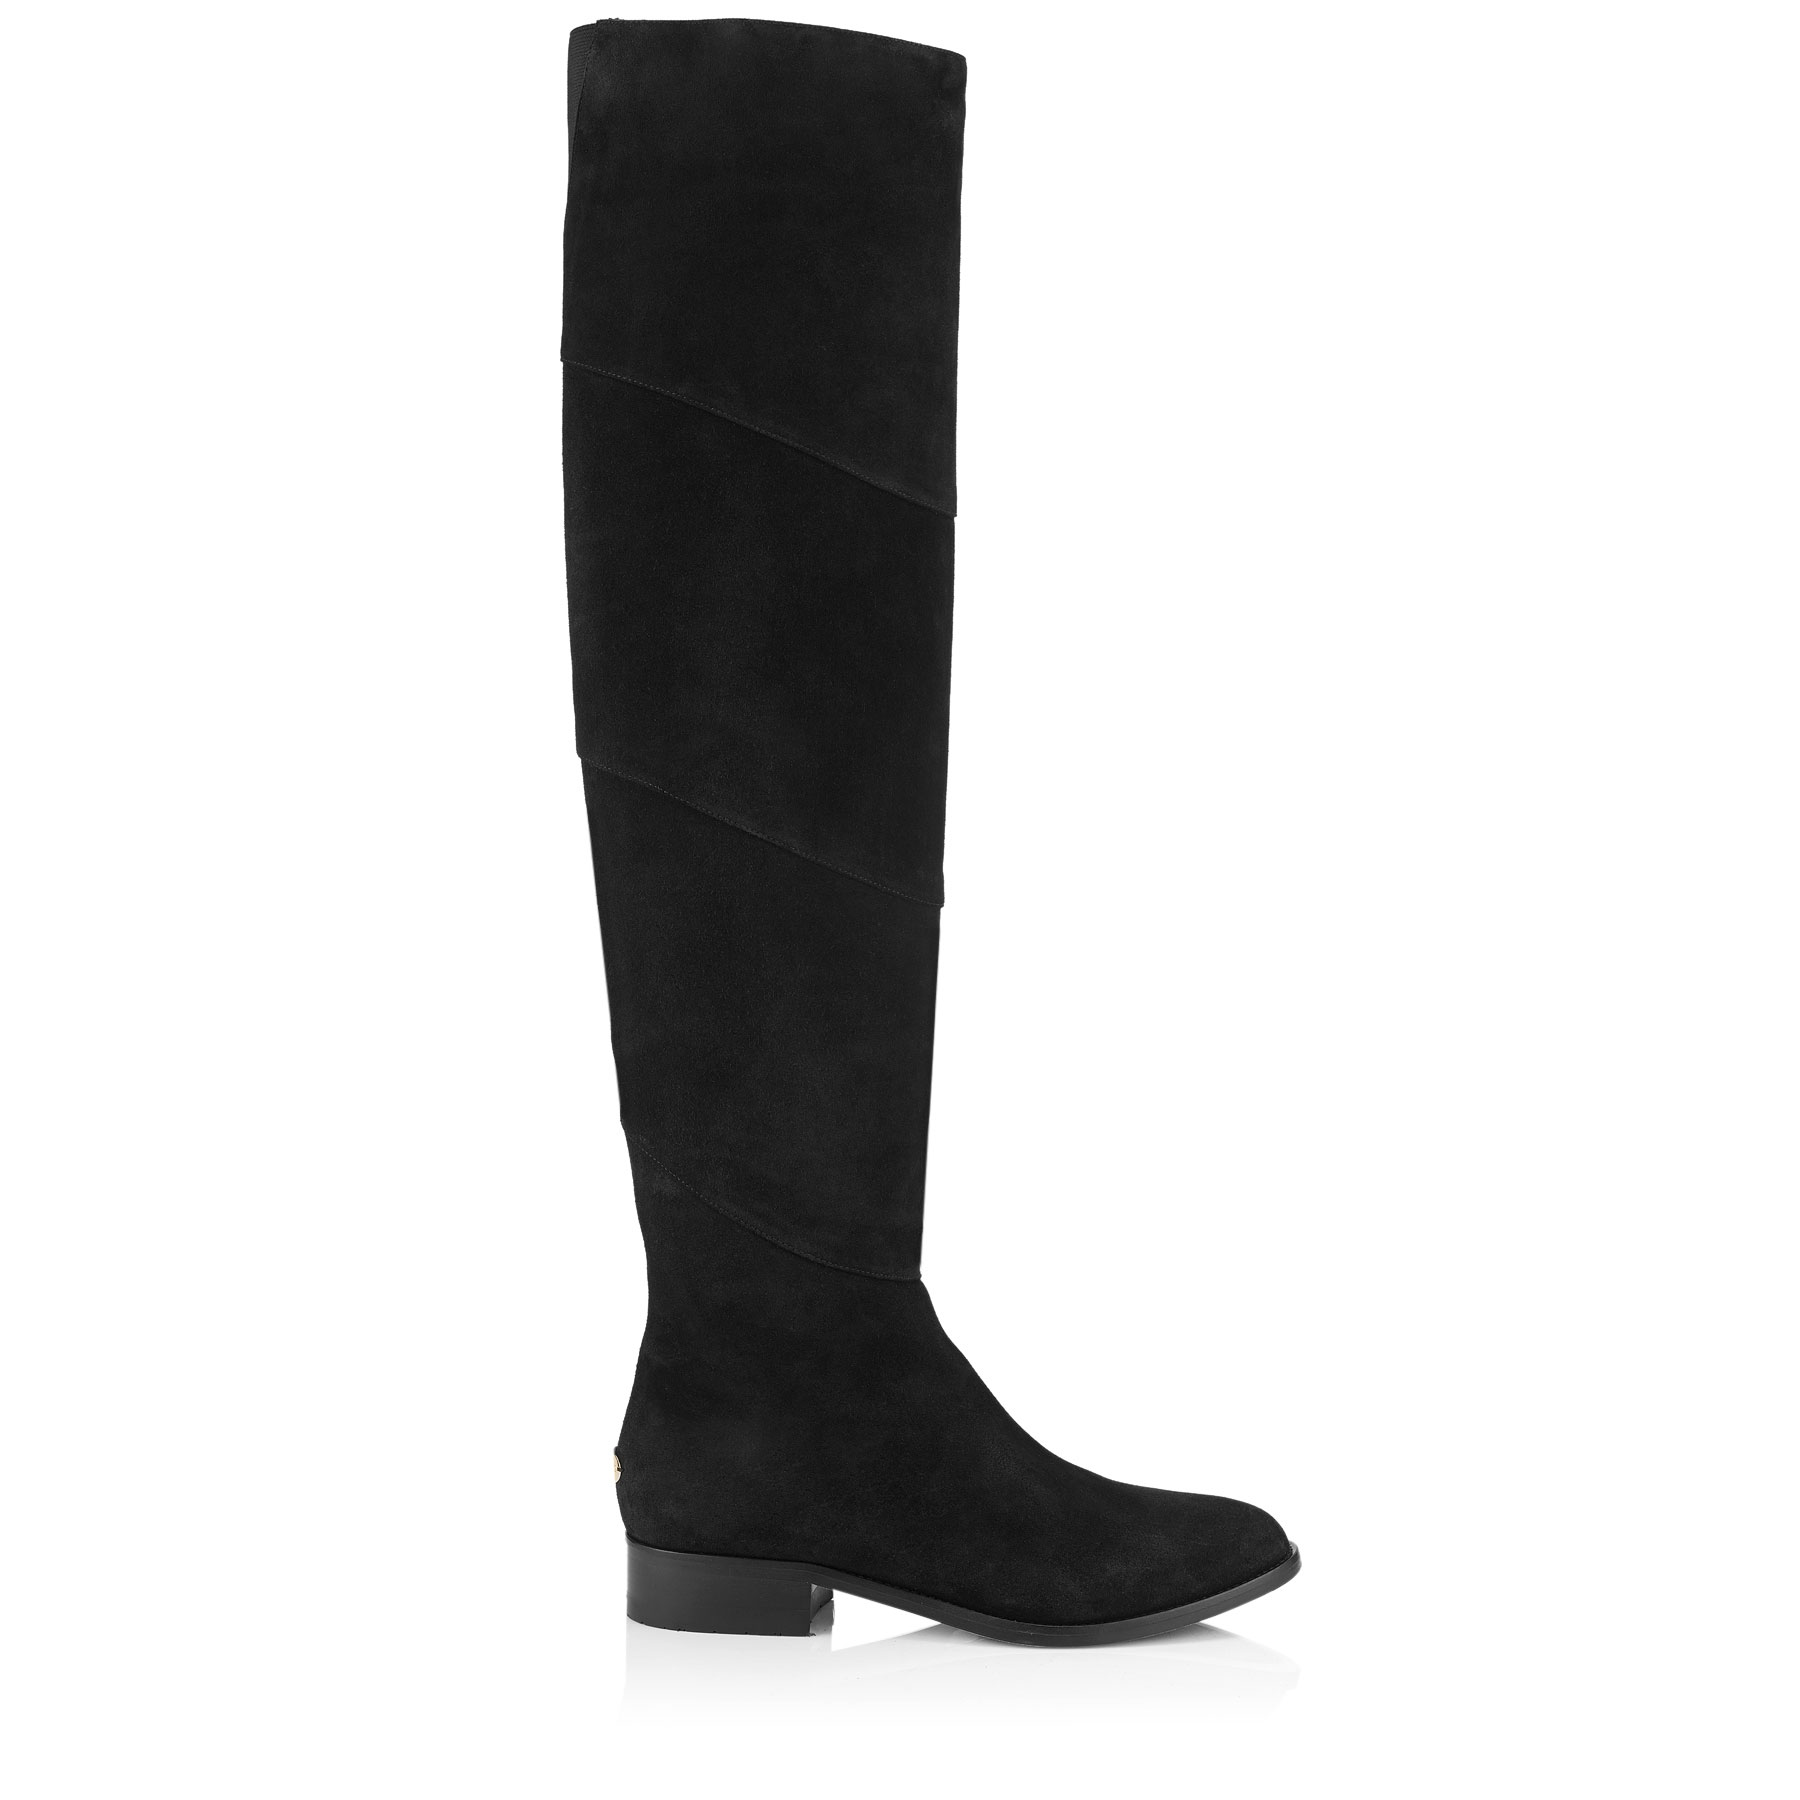 MILLER FLAT Black Suede Over-the-Knee Boots